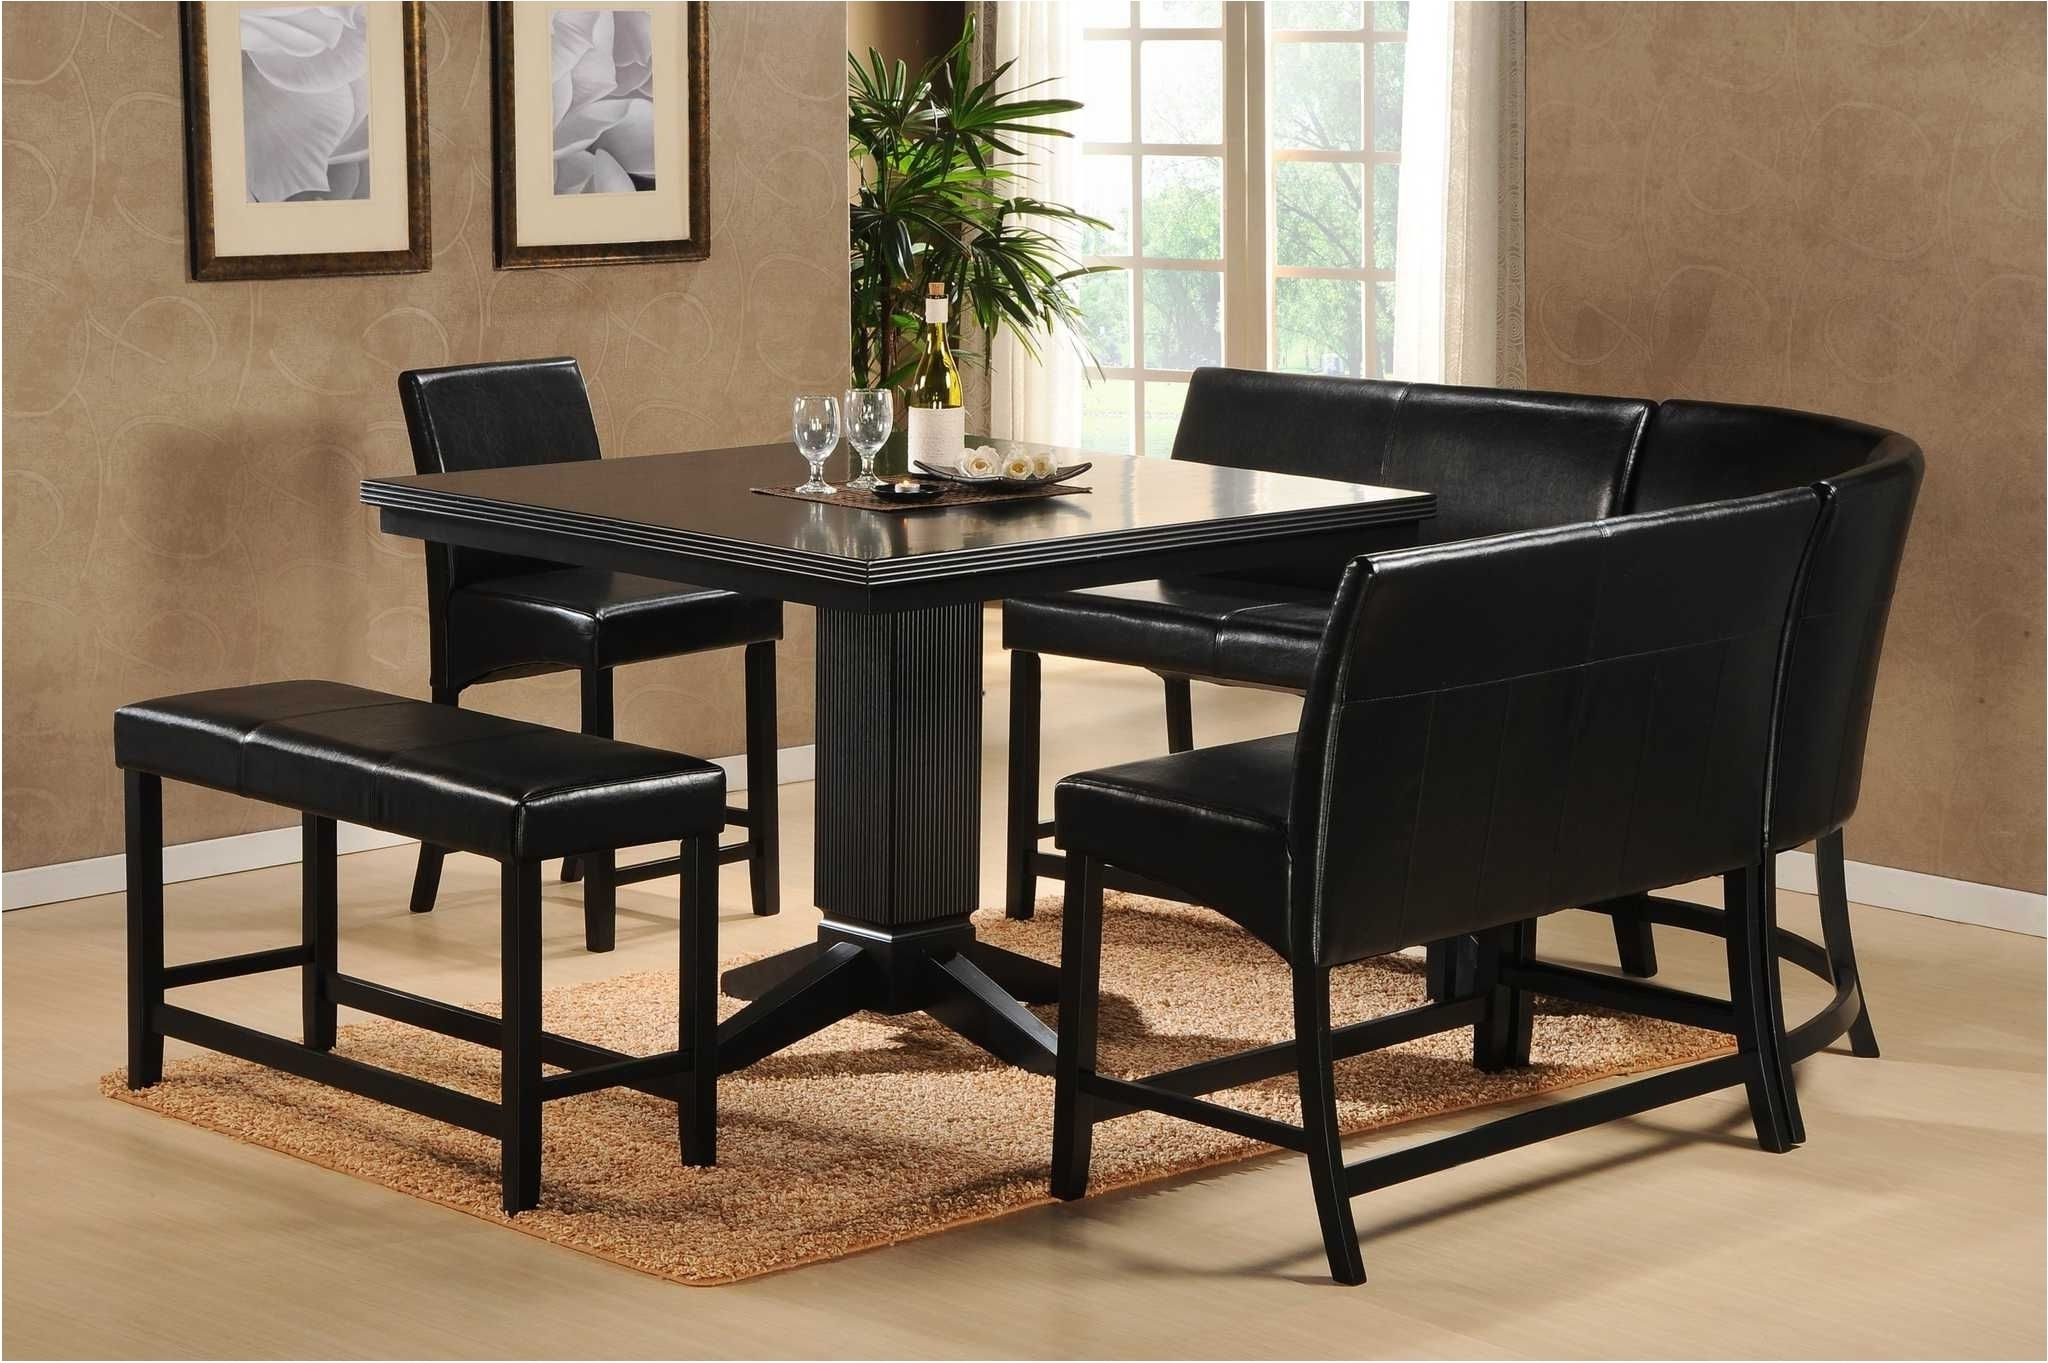 Favorite Incredible Alluring Cheap Small Dining Table Set 6 White Room Sets In Cheap Dining Sets (View 11 of 25)